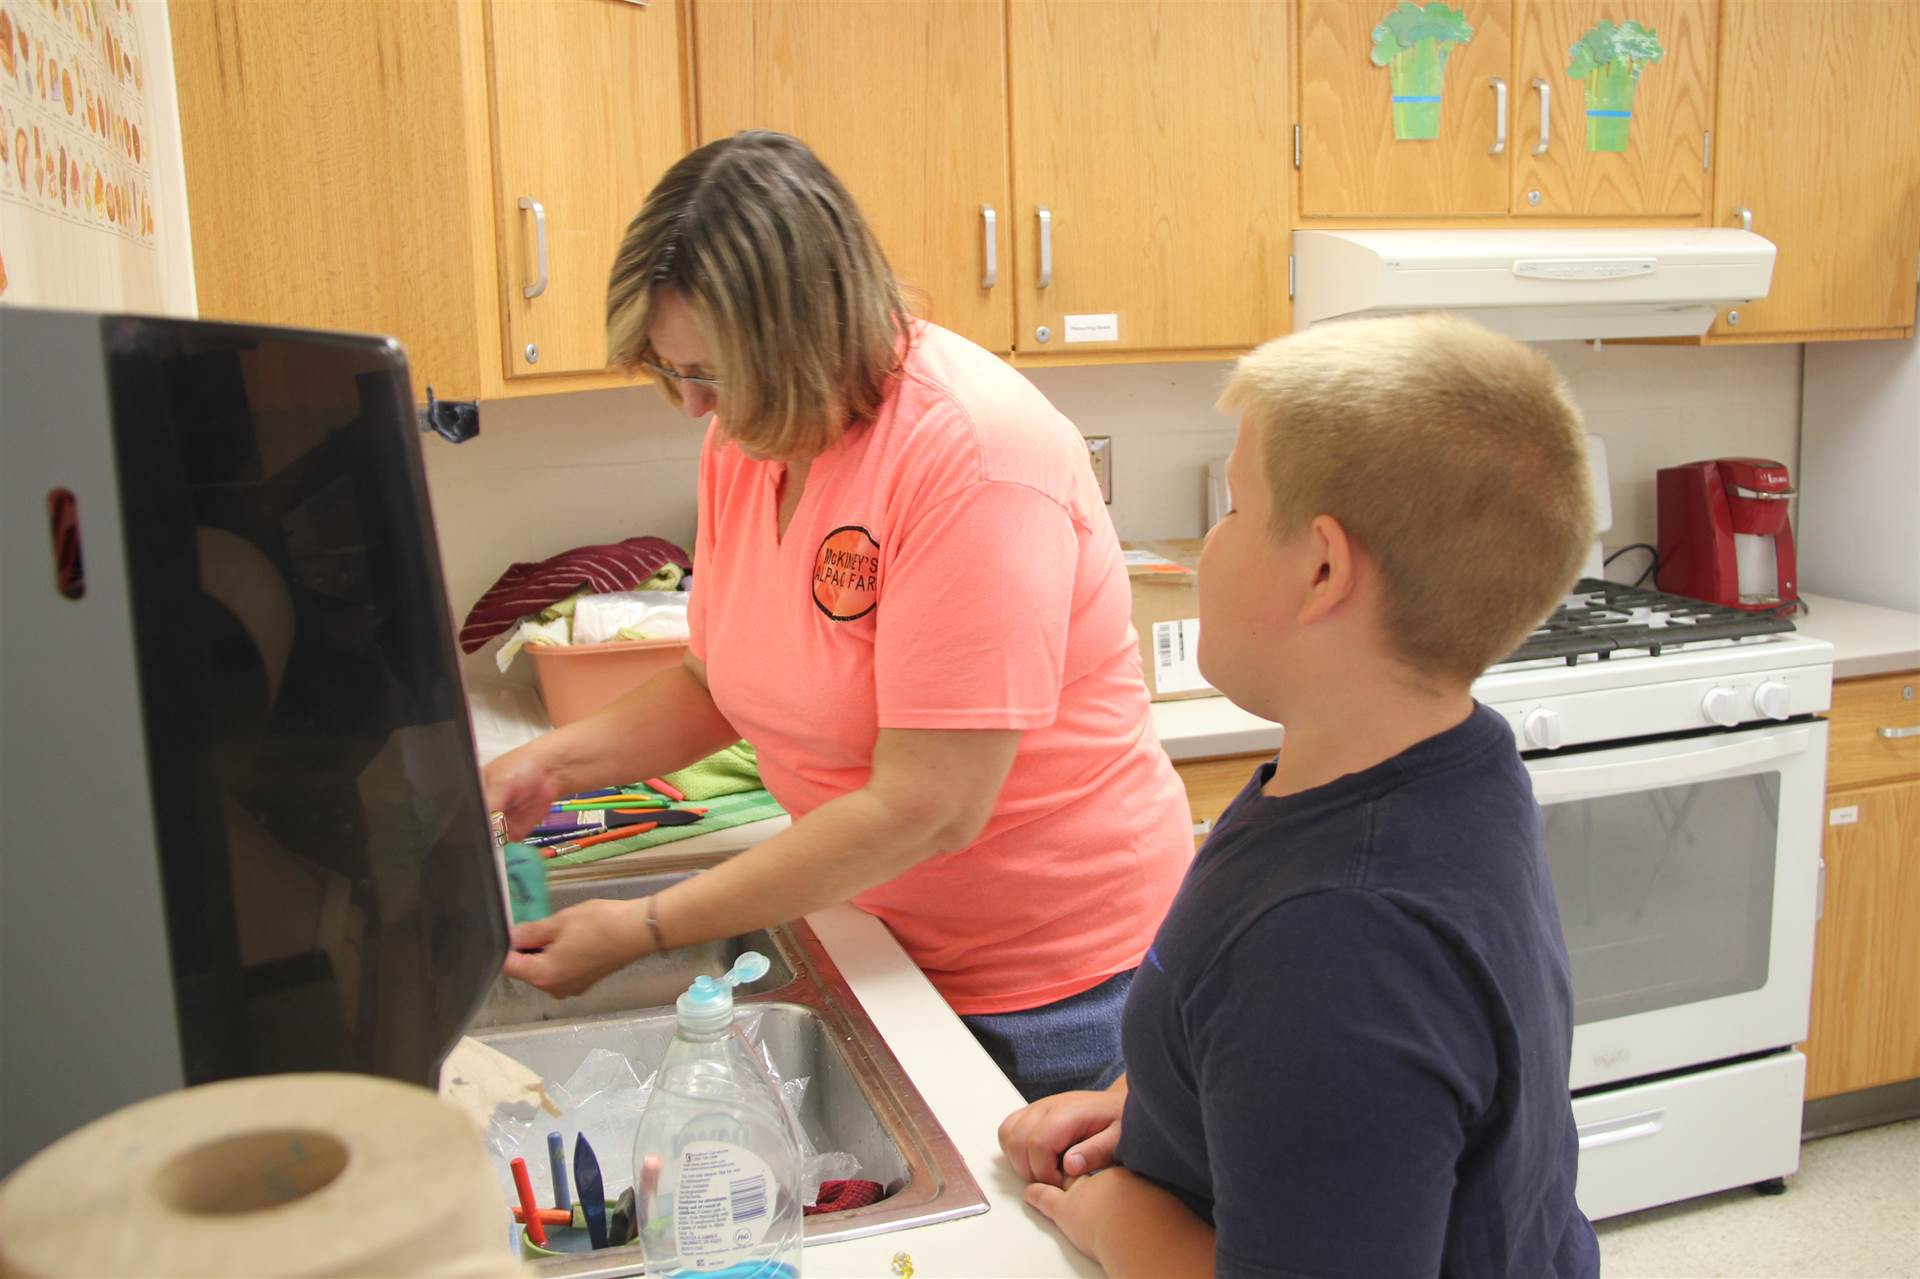 kris mckinney washes felt project for student